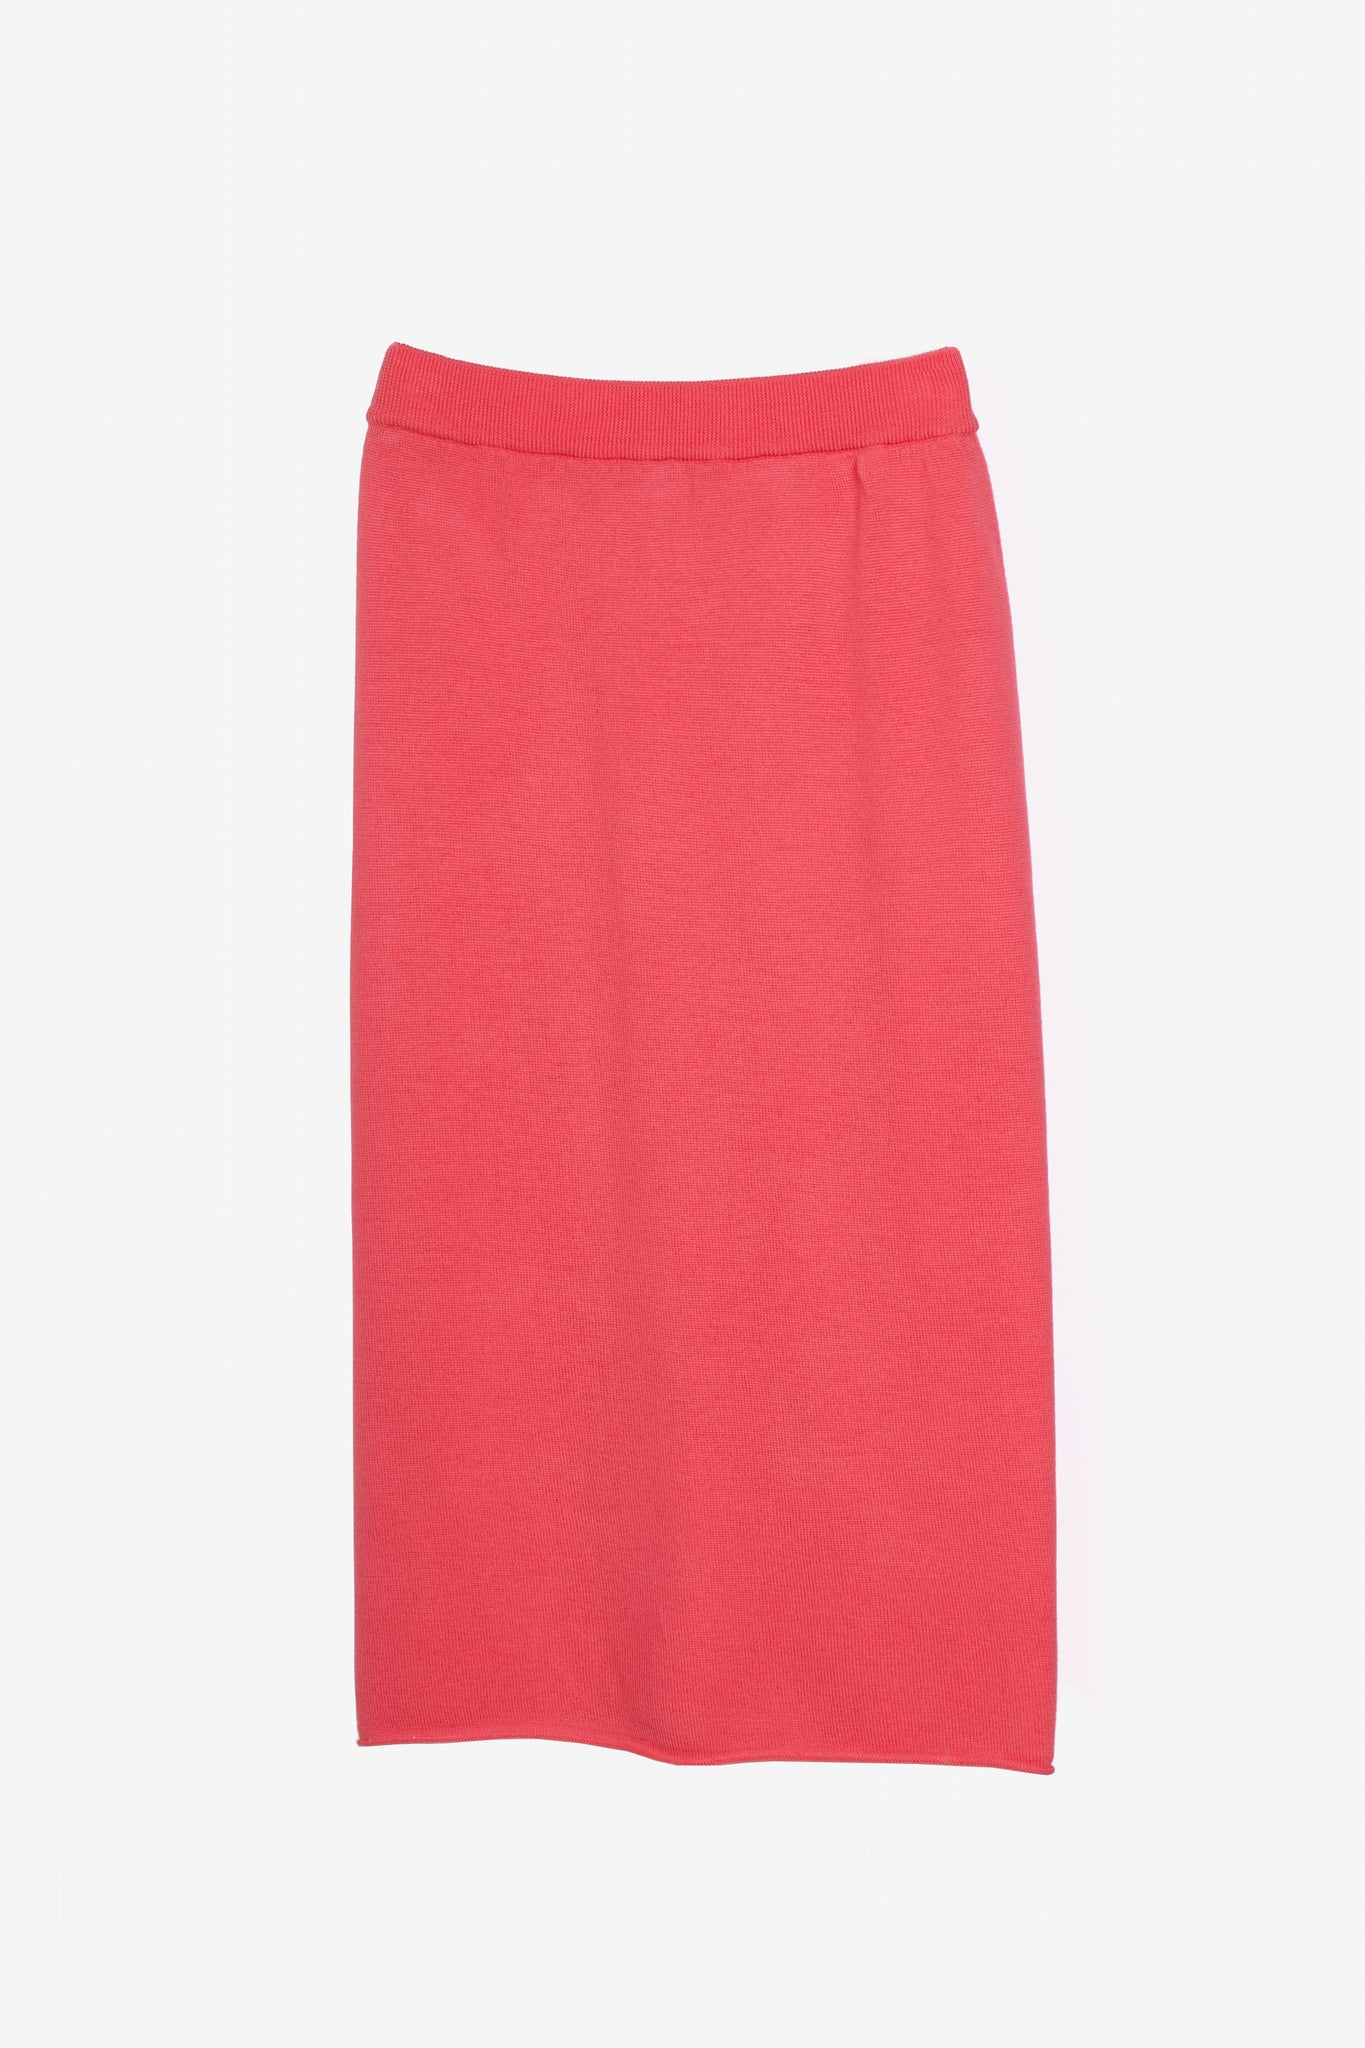 Lois skirt in coral